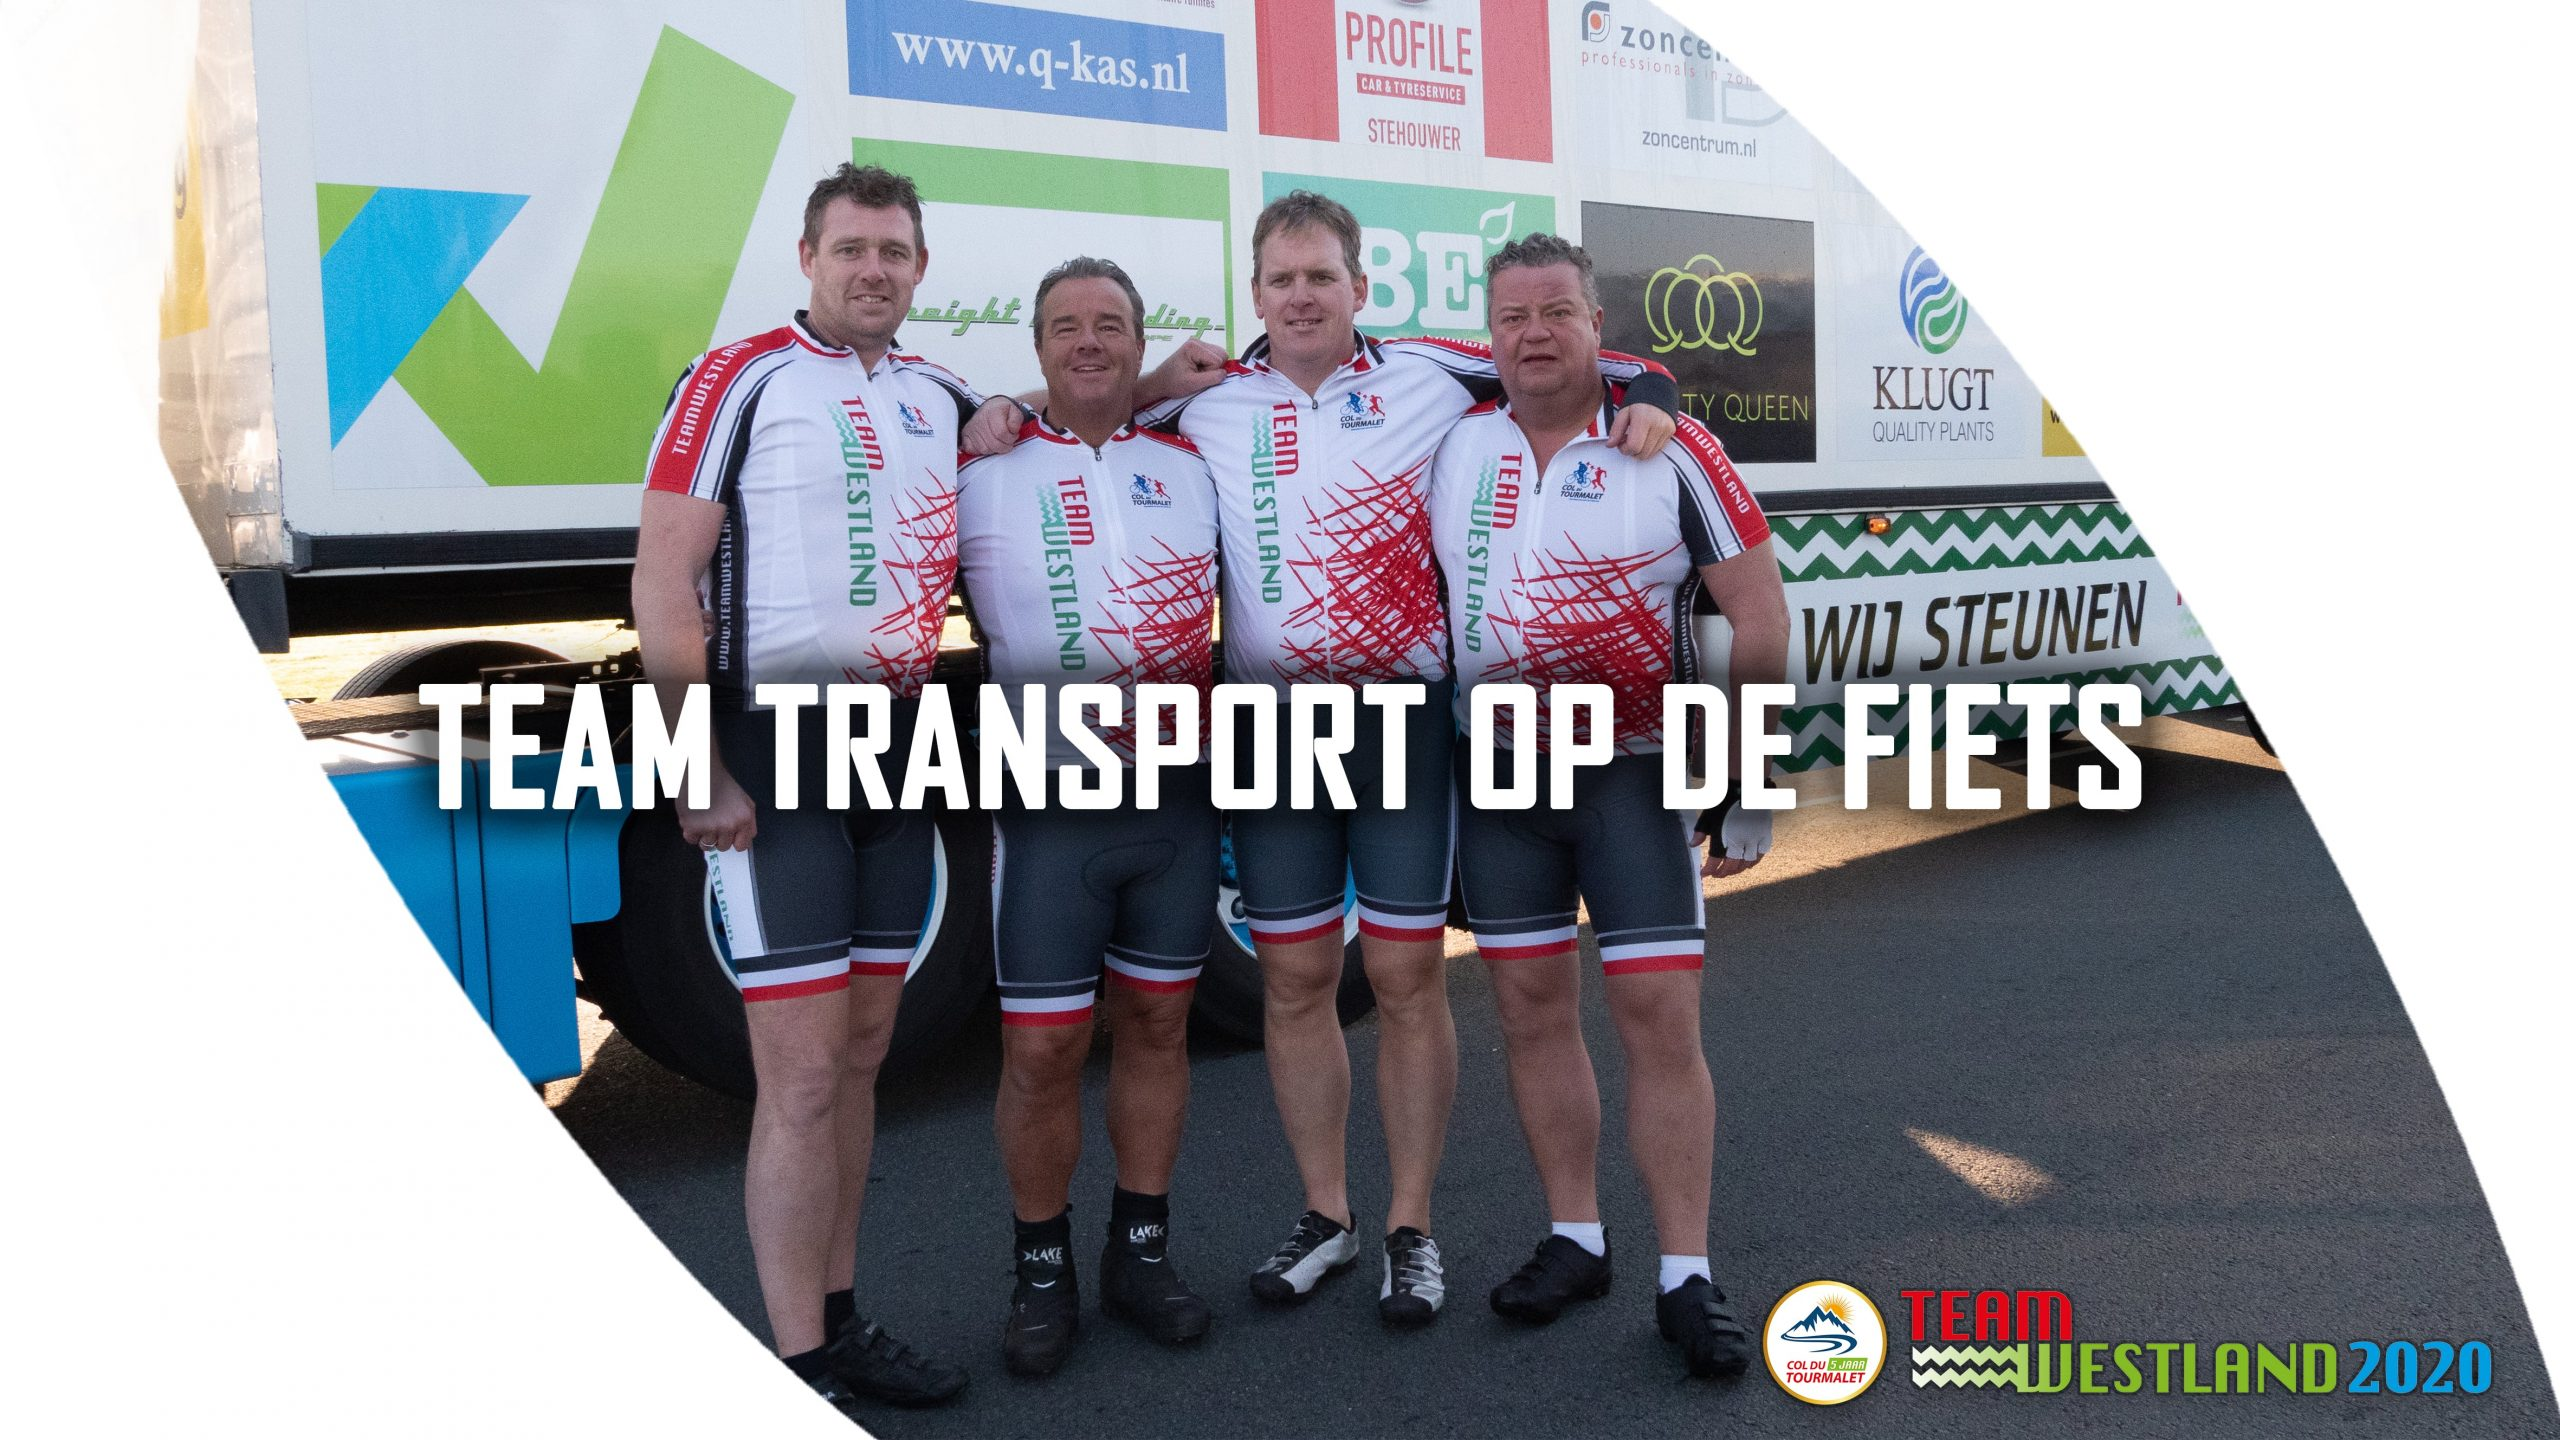 Team Transport op de fiets 2020